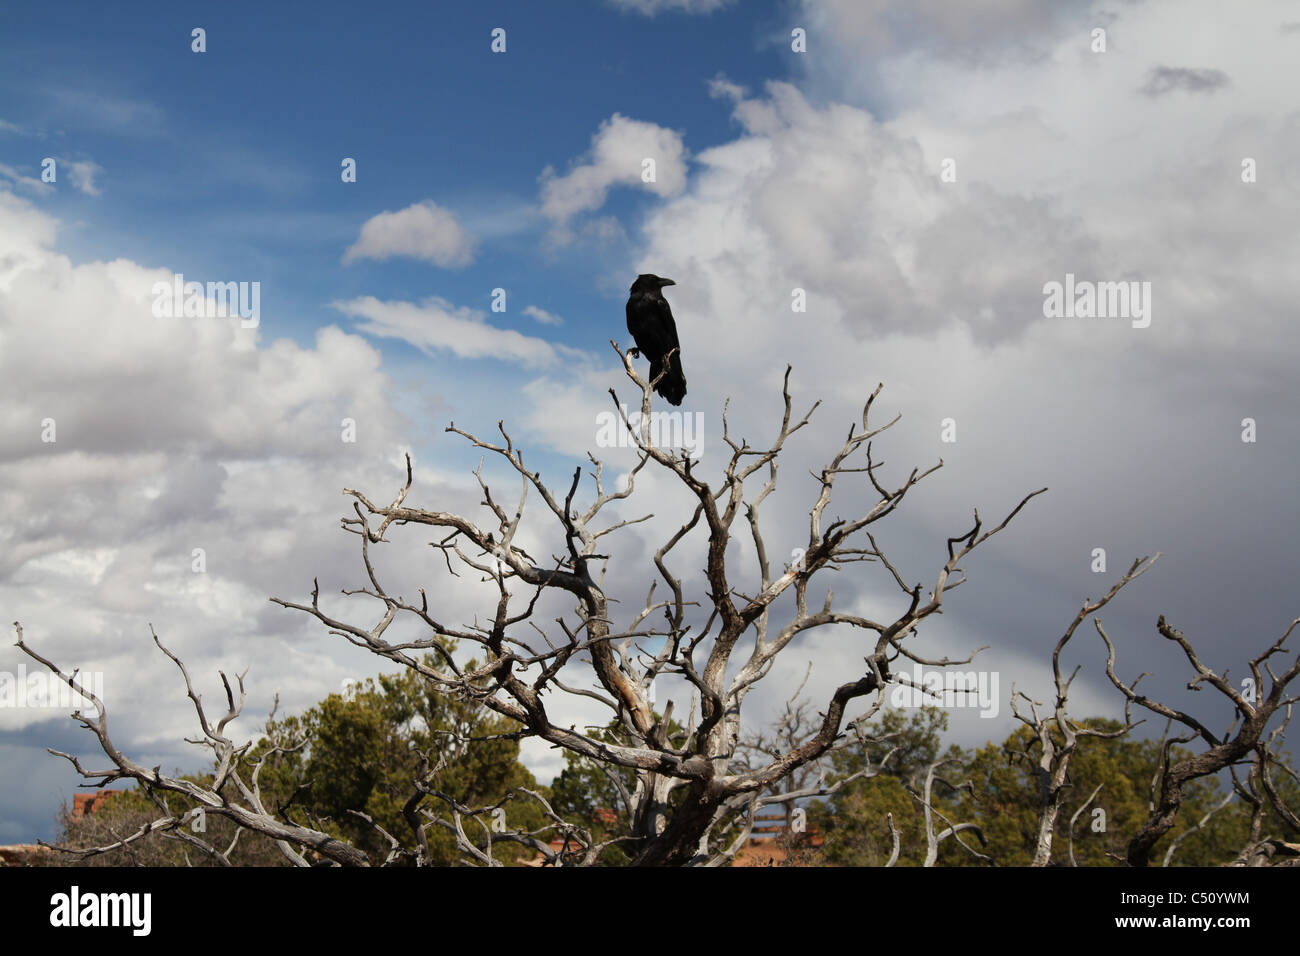 crow on a tree branch in canyonland national park - Stock Image